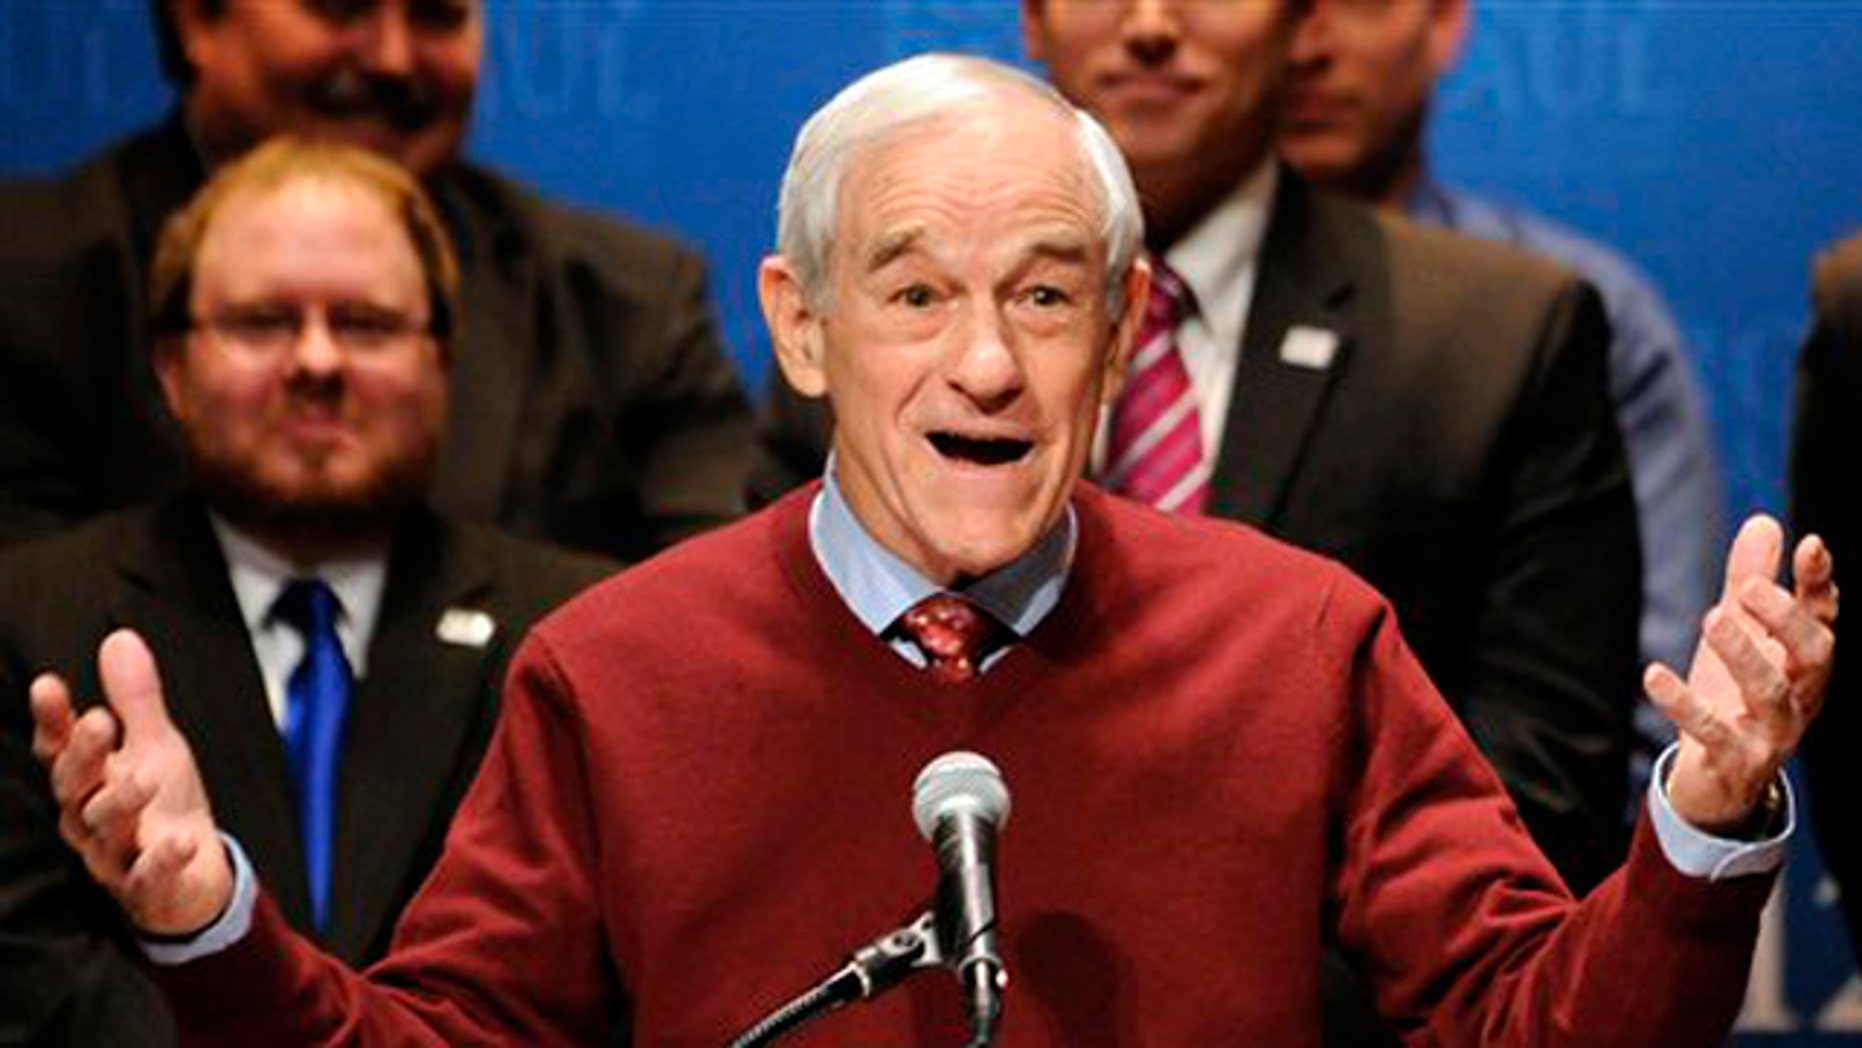 Feb. 7, 2012: Then-Republican presidential candidate Rep. Ron Paul speaks in Golden Valley, Minn.